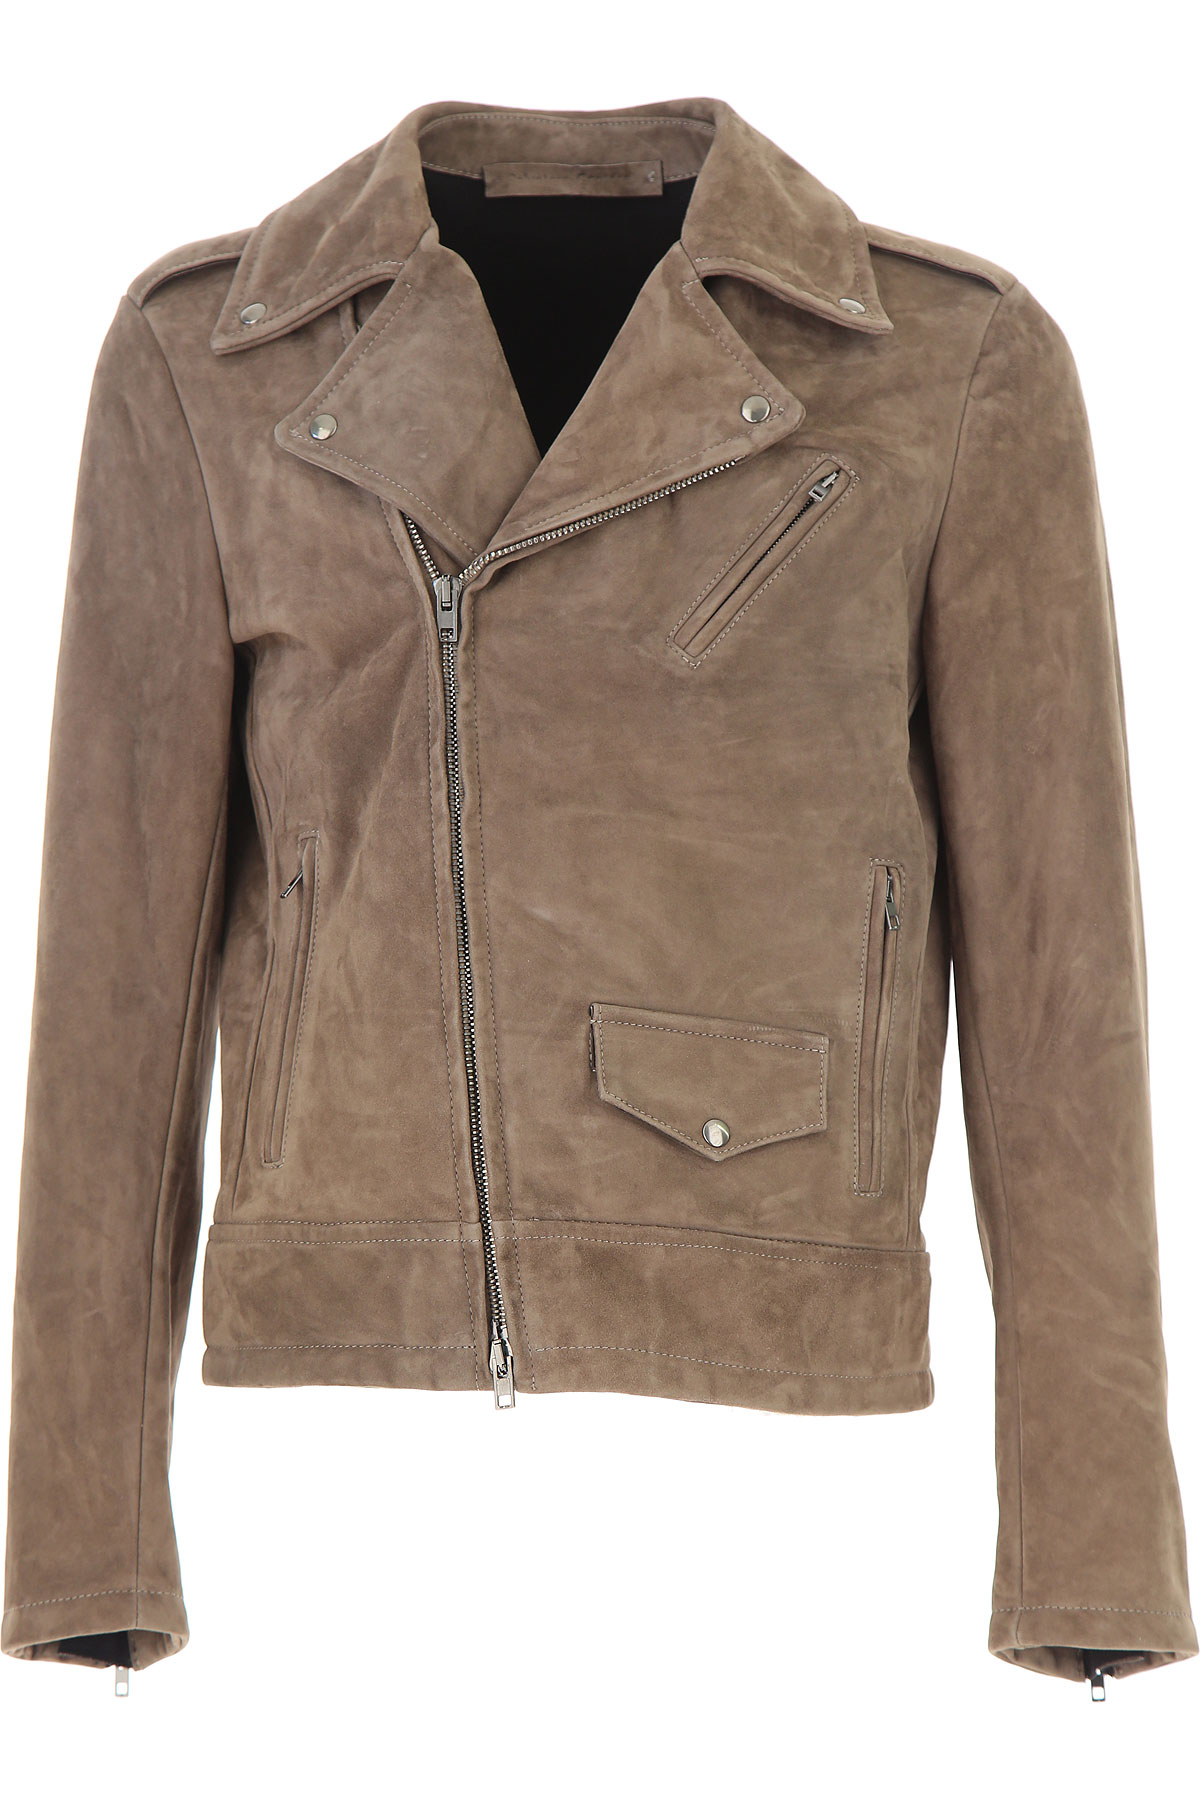 Image of Salvatore Santoro Leather Jacket for Men, Turtle Dove, Suede leather, 2017, L M XL